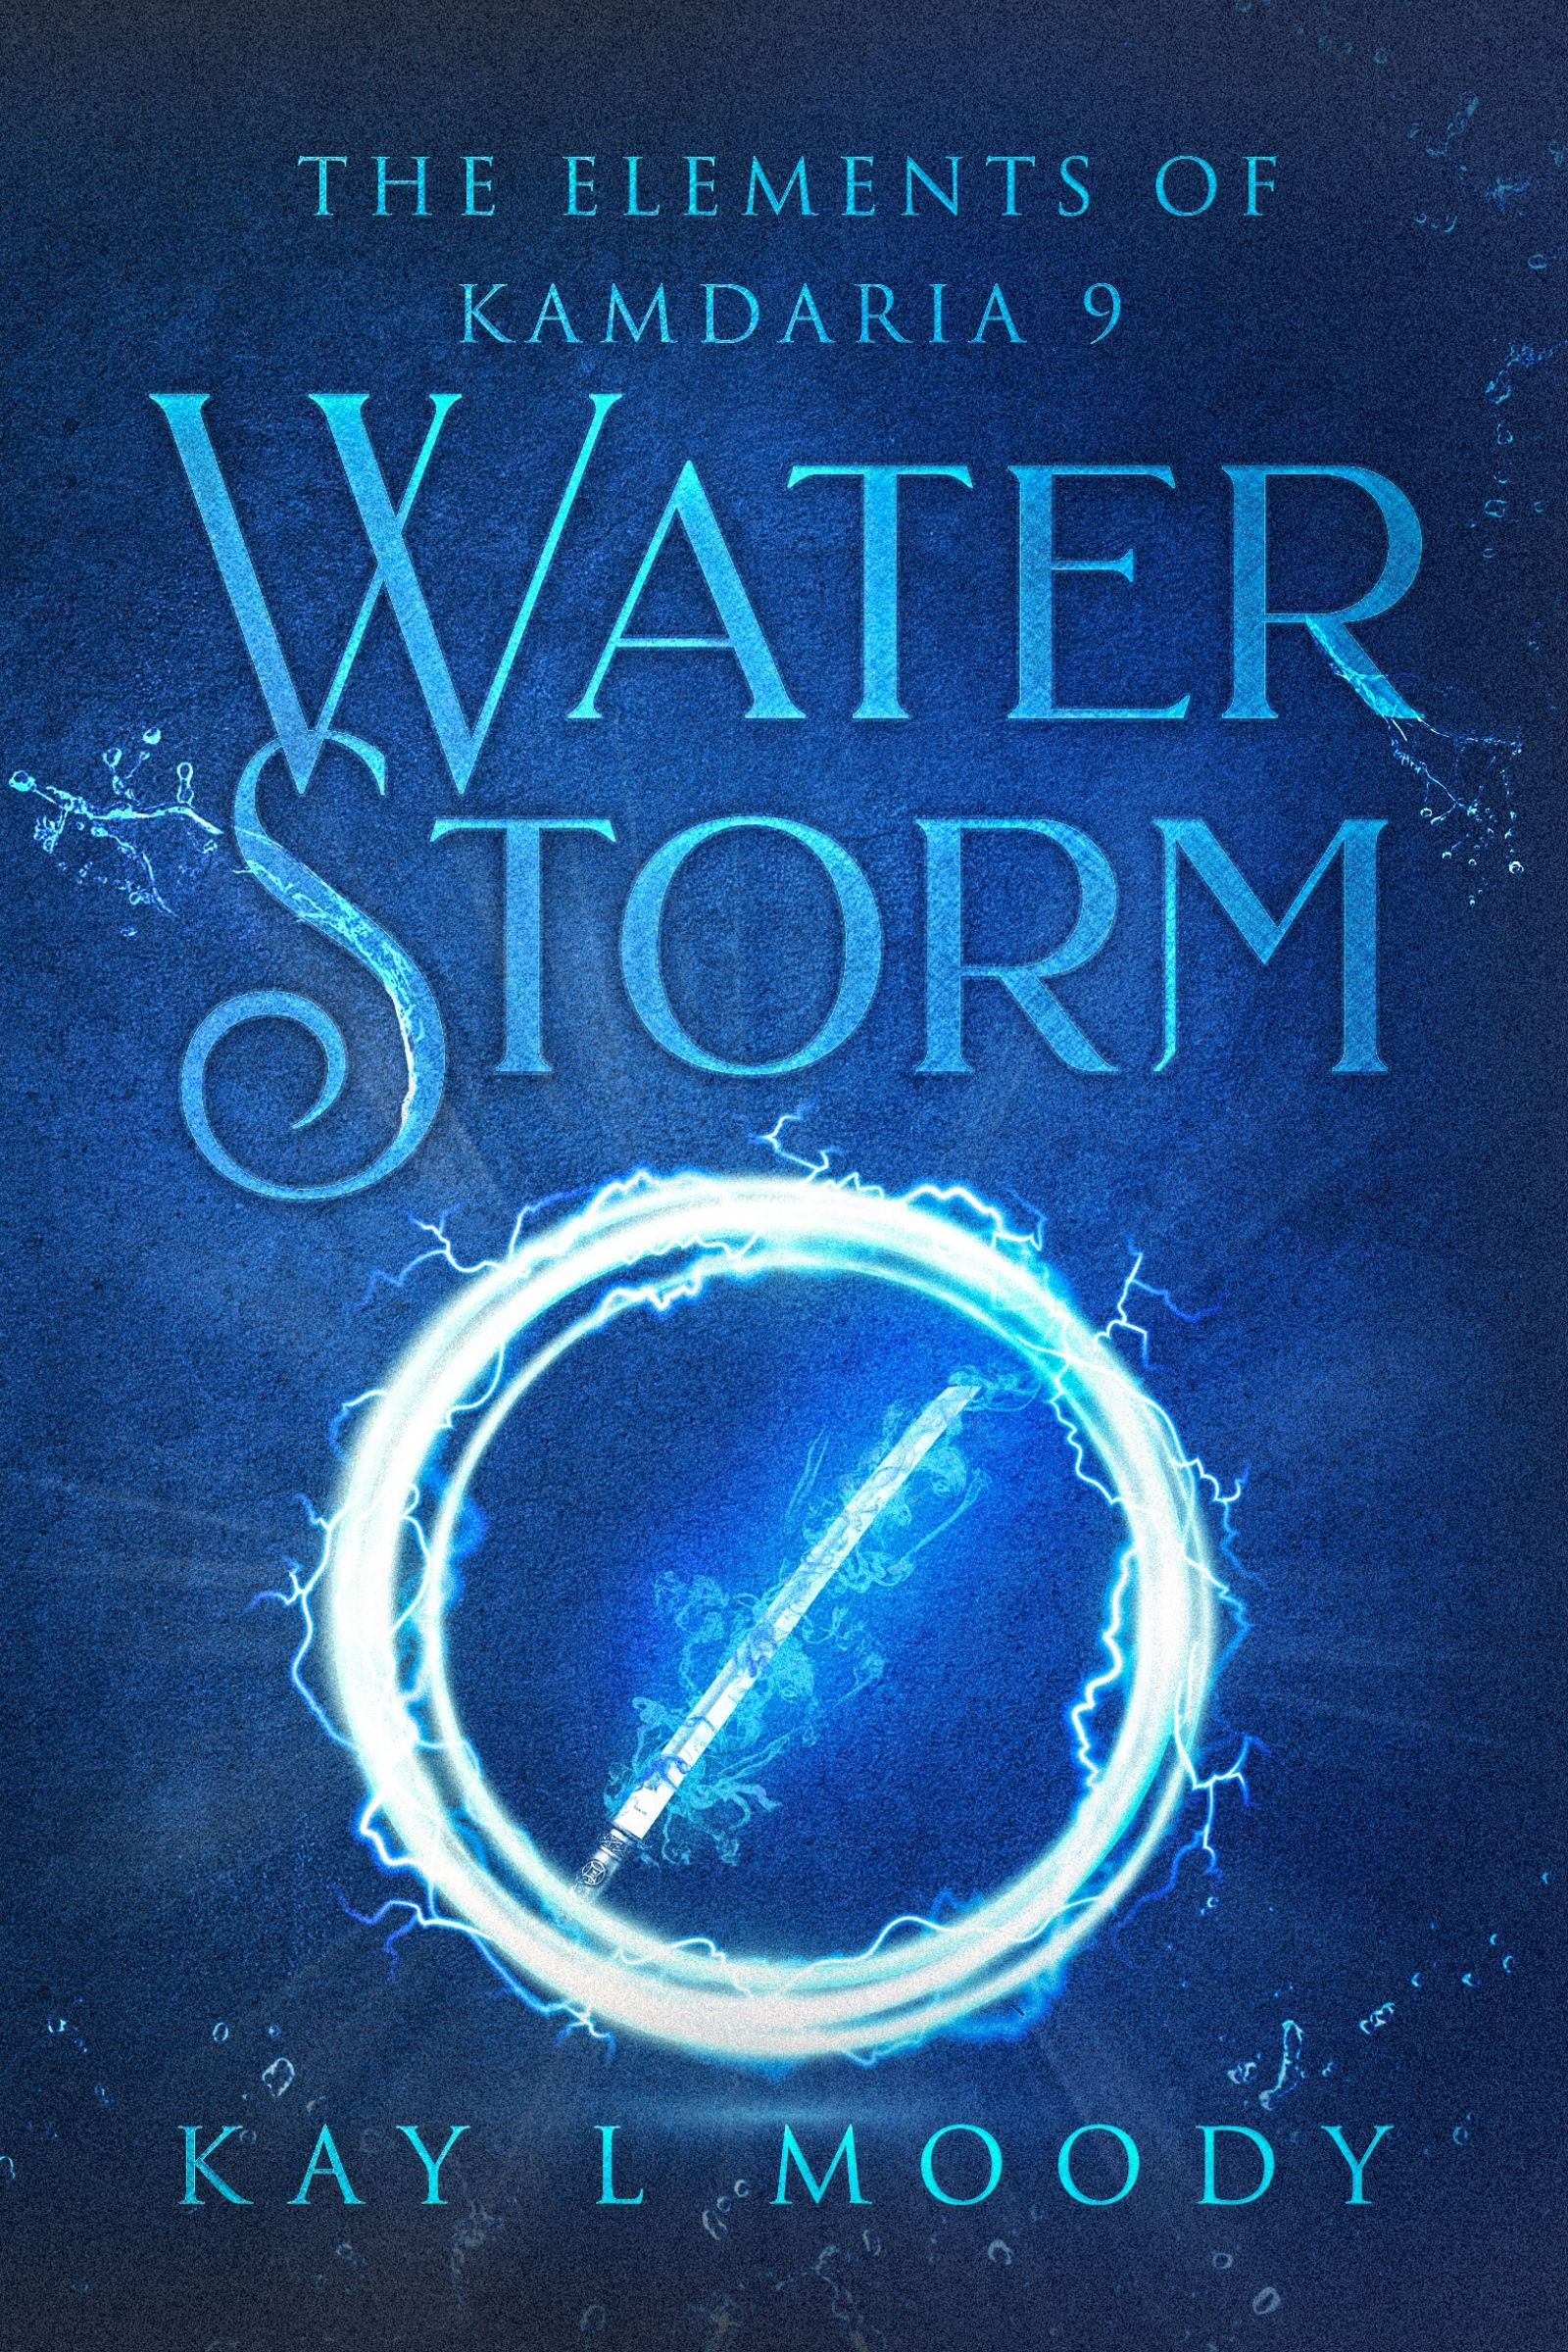 Water Storm (The Elements of Kamdaria Book 9). In the most dangerous part of the empire, Talise's survival has never been in greater jeopardy.